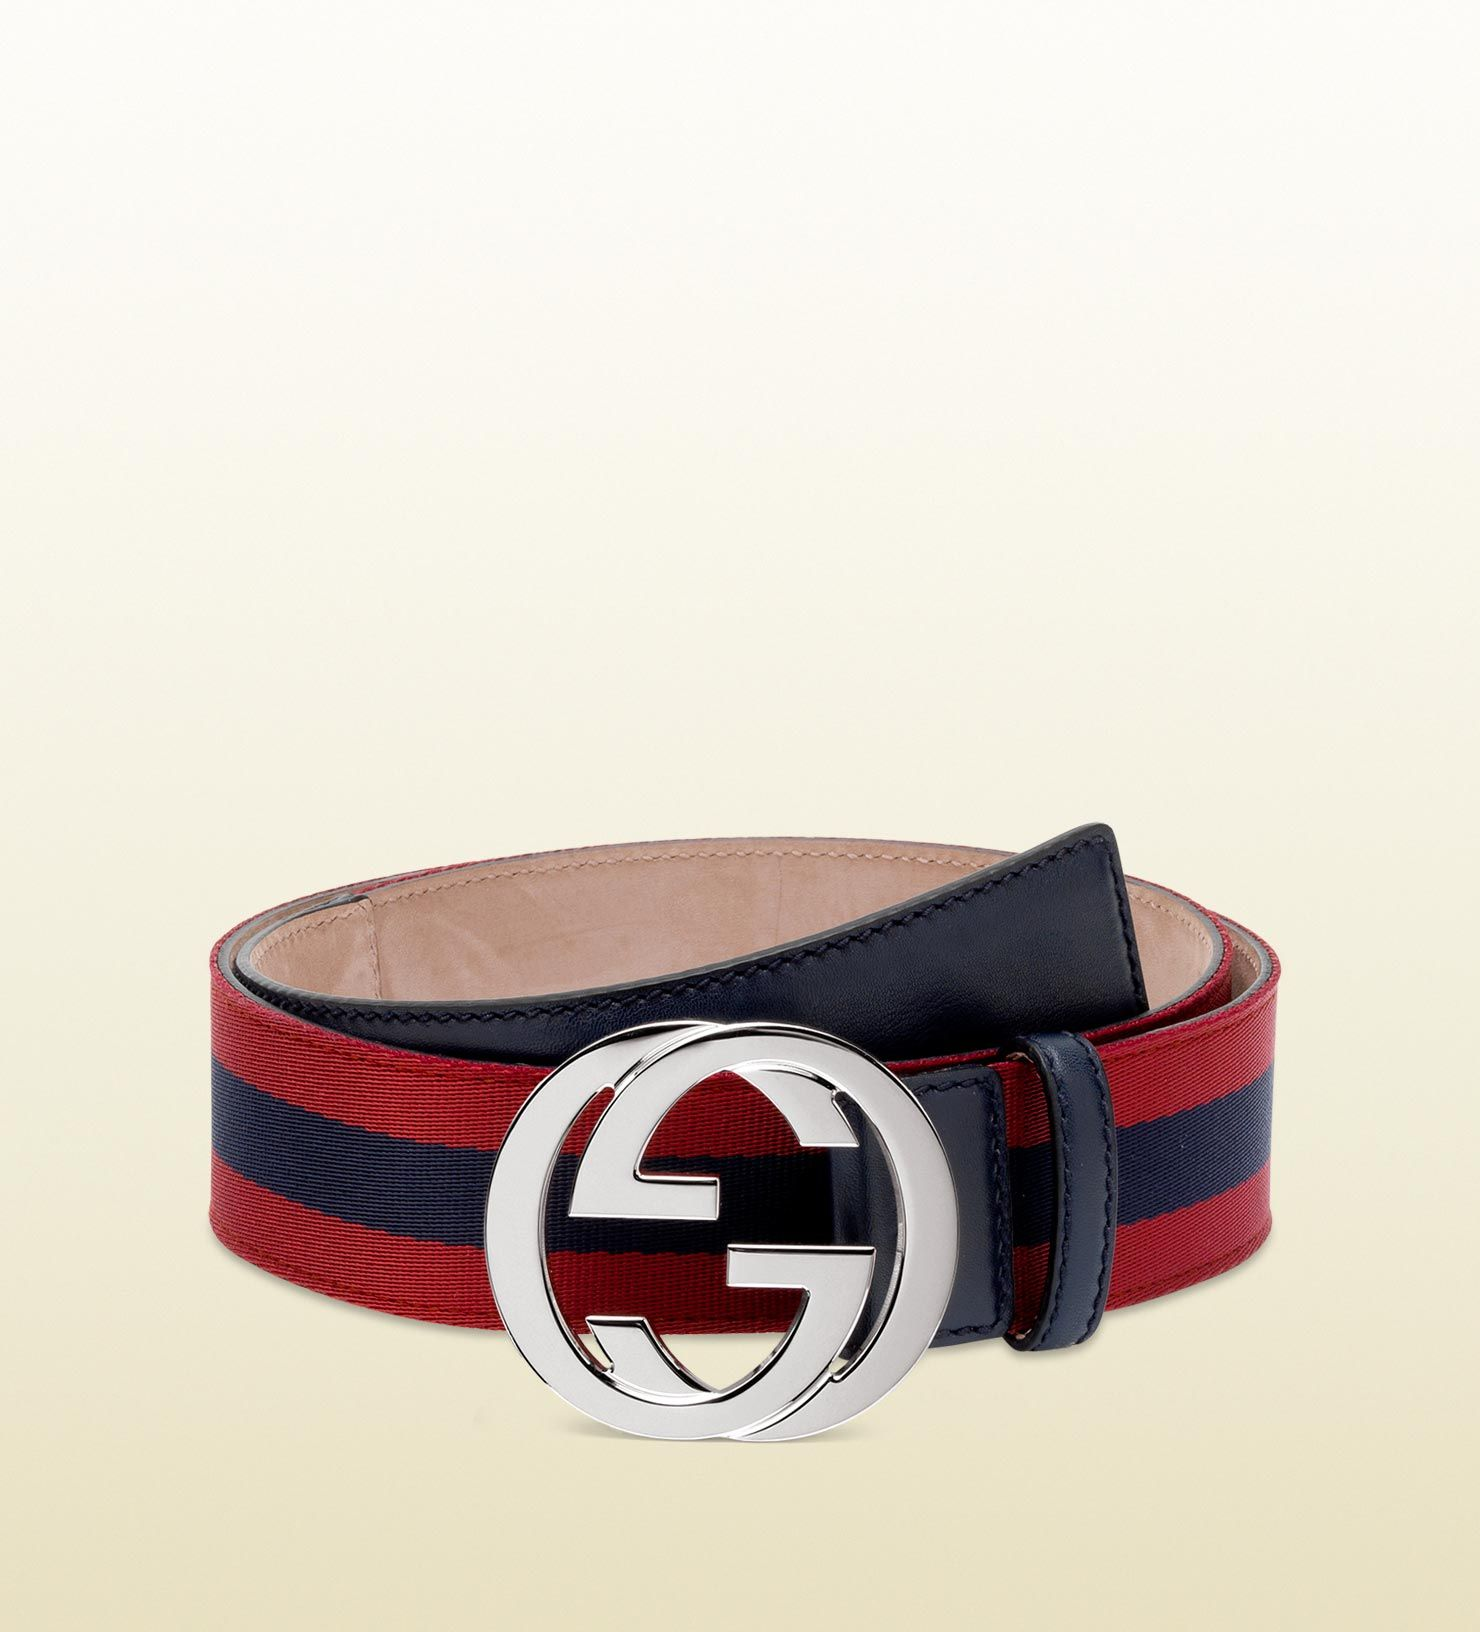 bc7394ec Gucci men belt in bordeaux blue bordeaux web fabric | fm | Gucci men ...